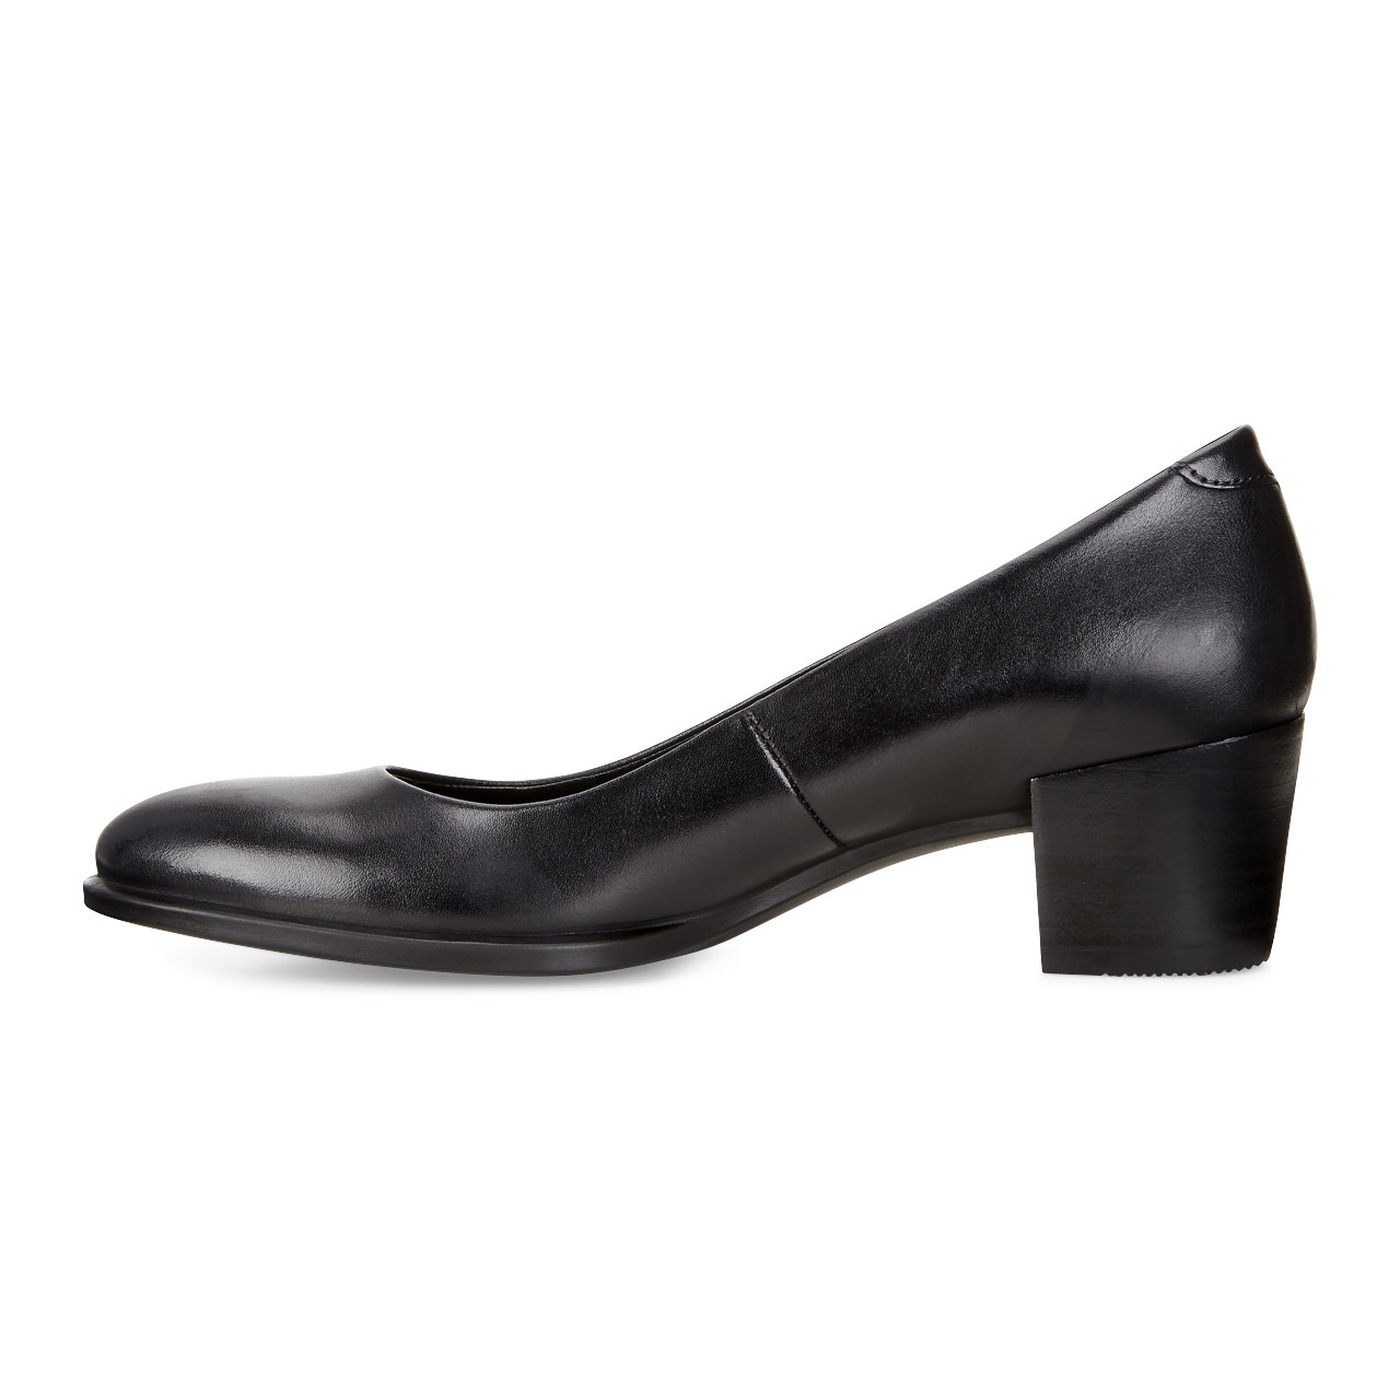 ECCO Shape 35 Pump